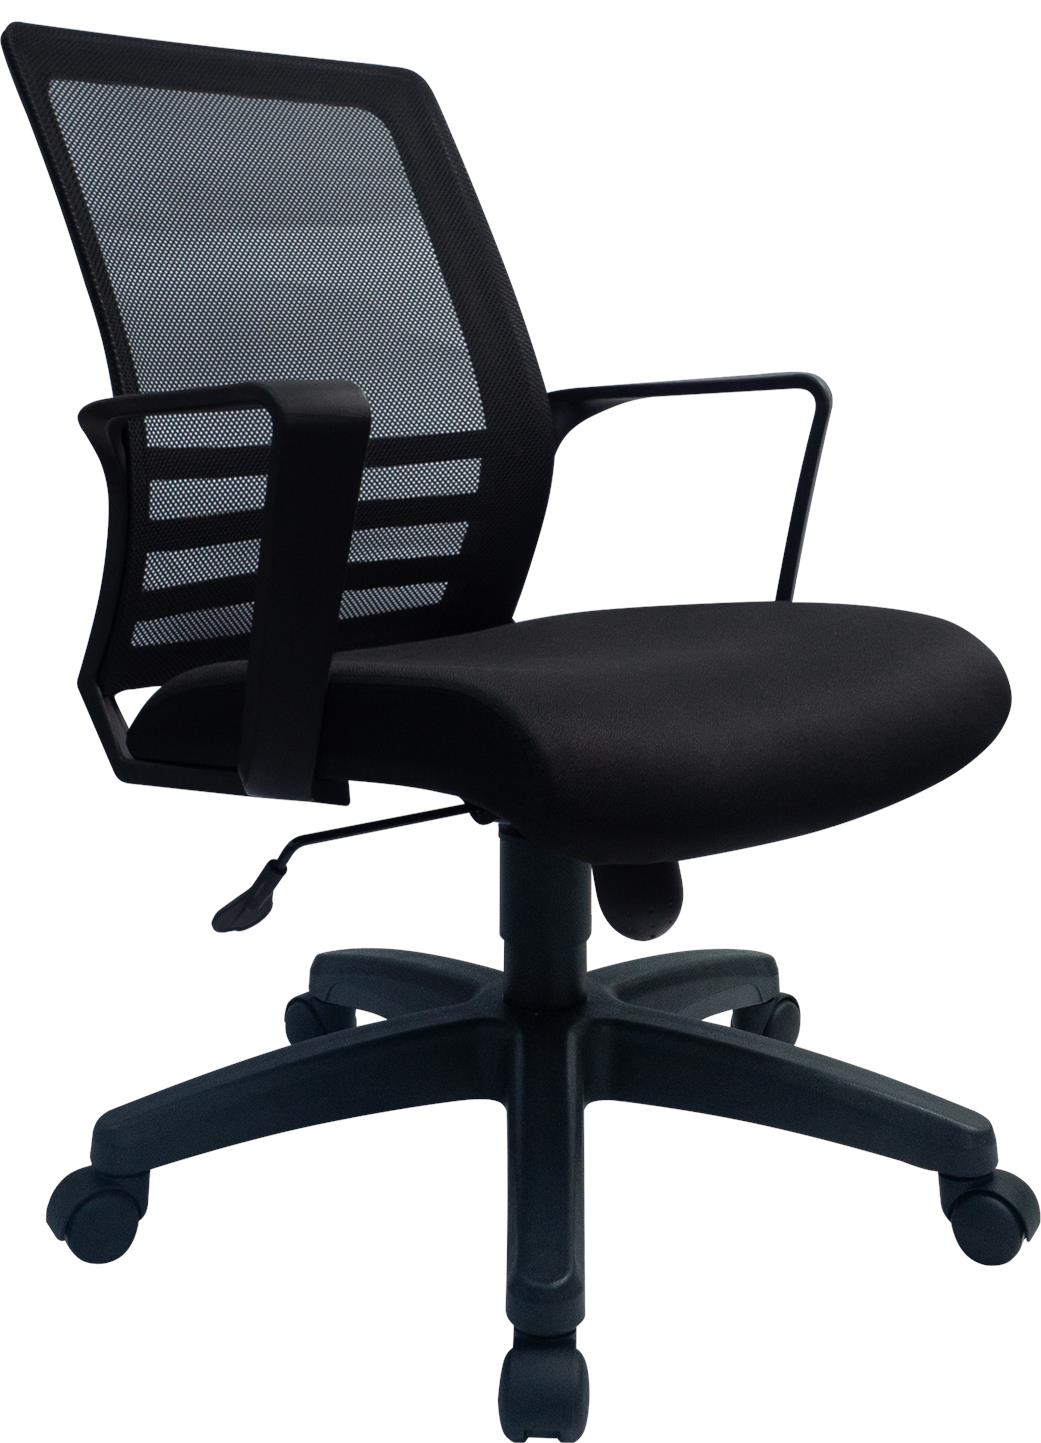 Low Back Office Chair Low Back Office Chair Nt 37 Pp